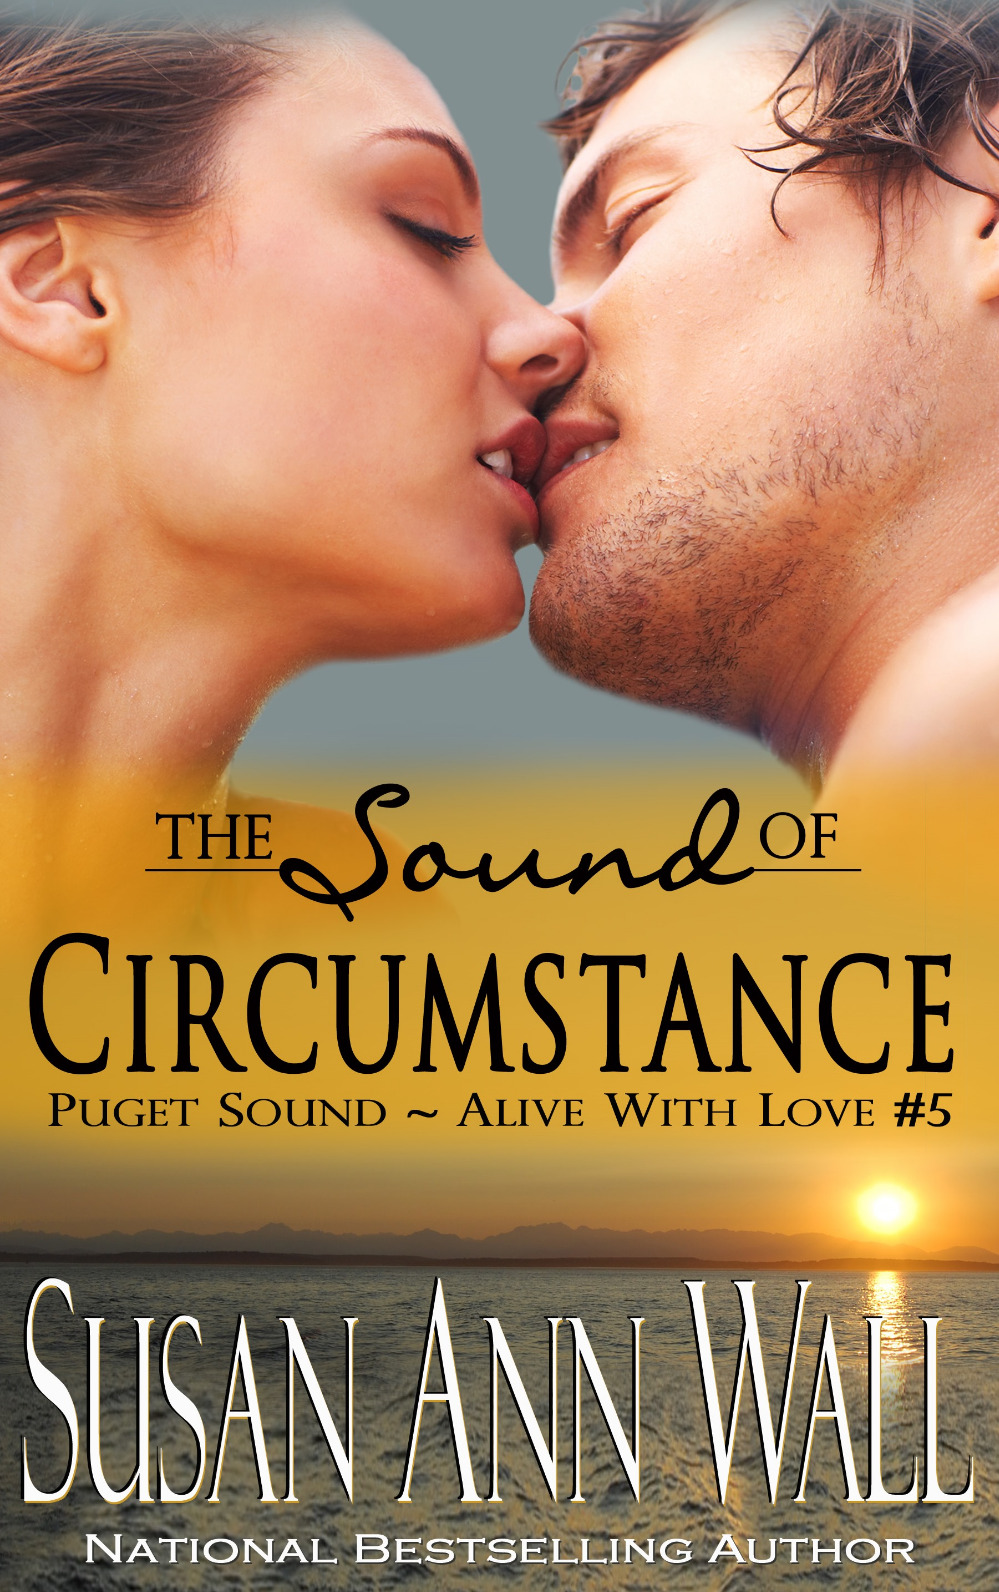 The Sound of Circumstance (Puget Sound ~ Alive With Love #5)